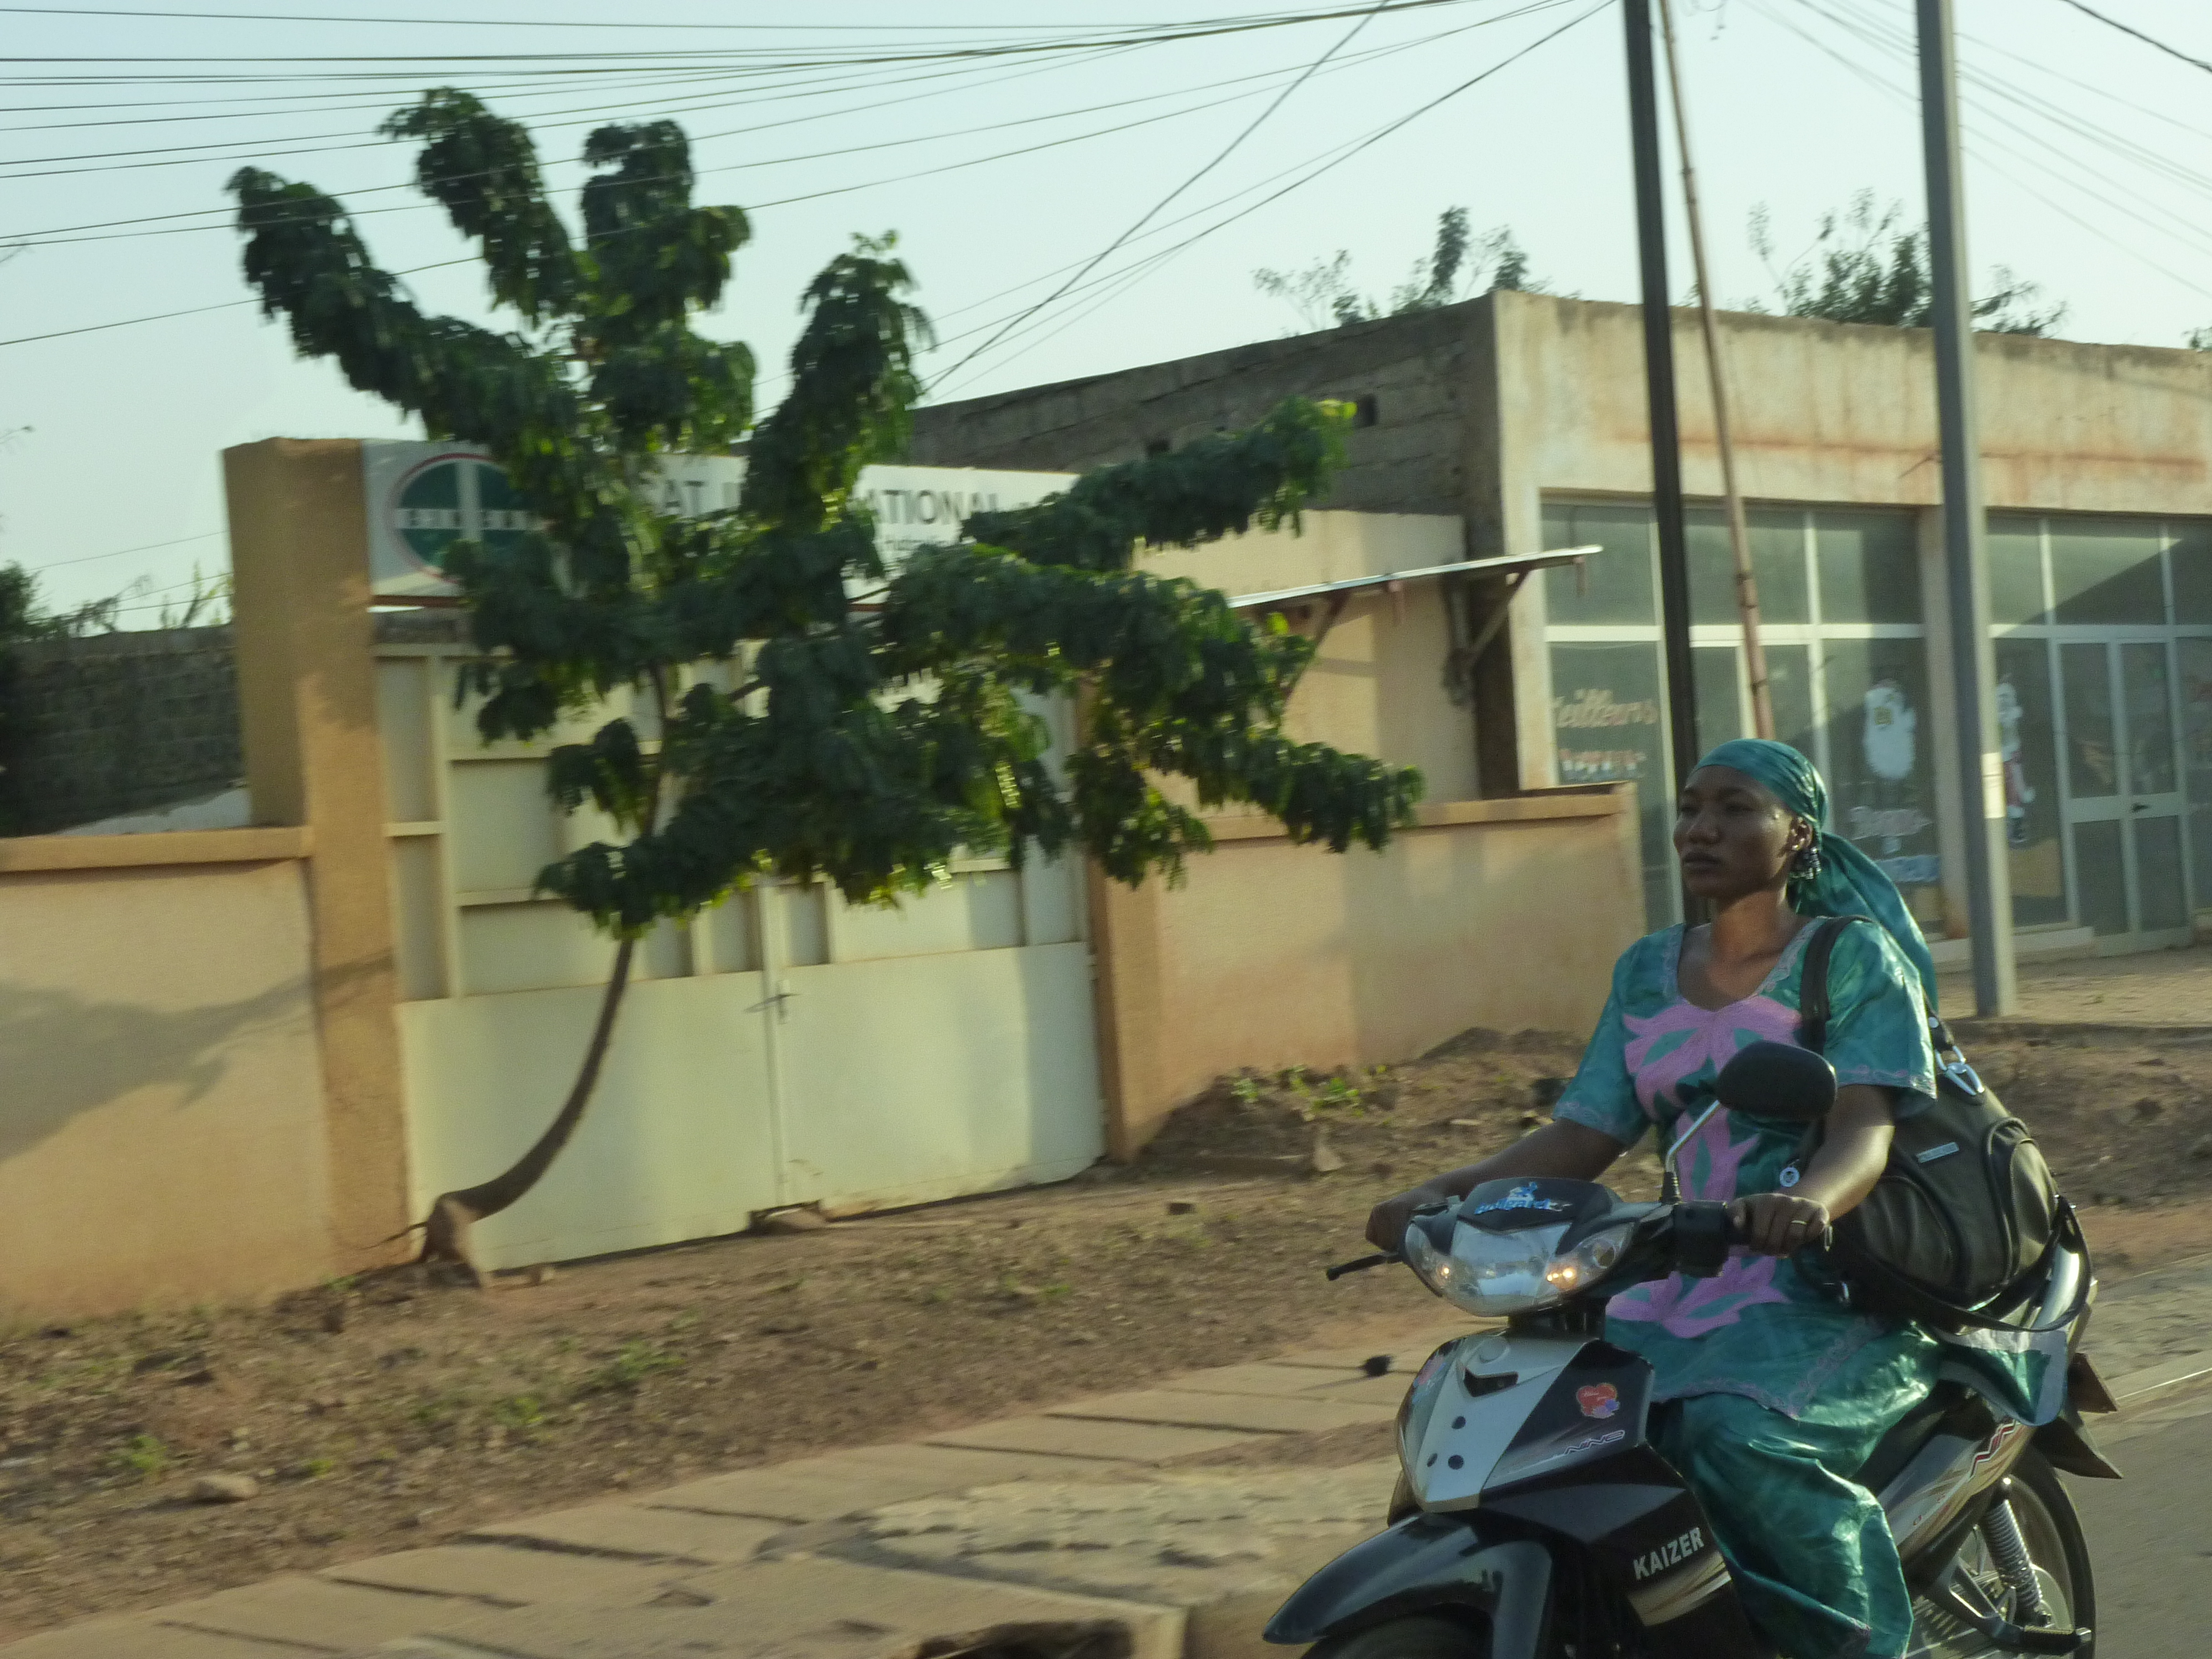 Woman on scooter_Burkina Faso